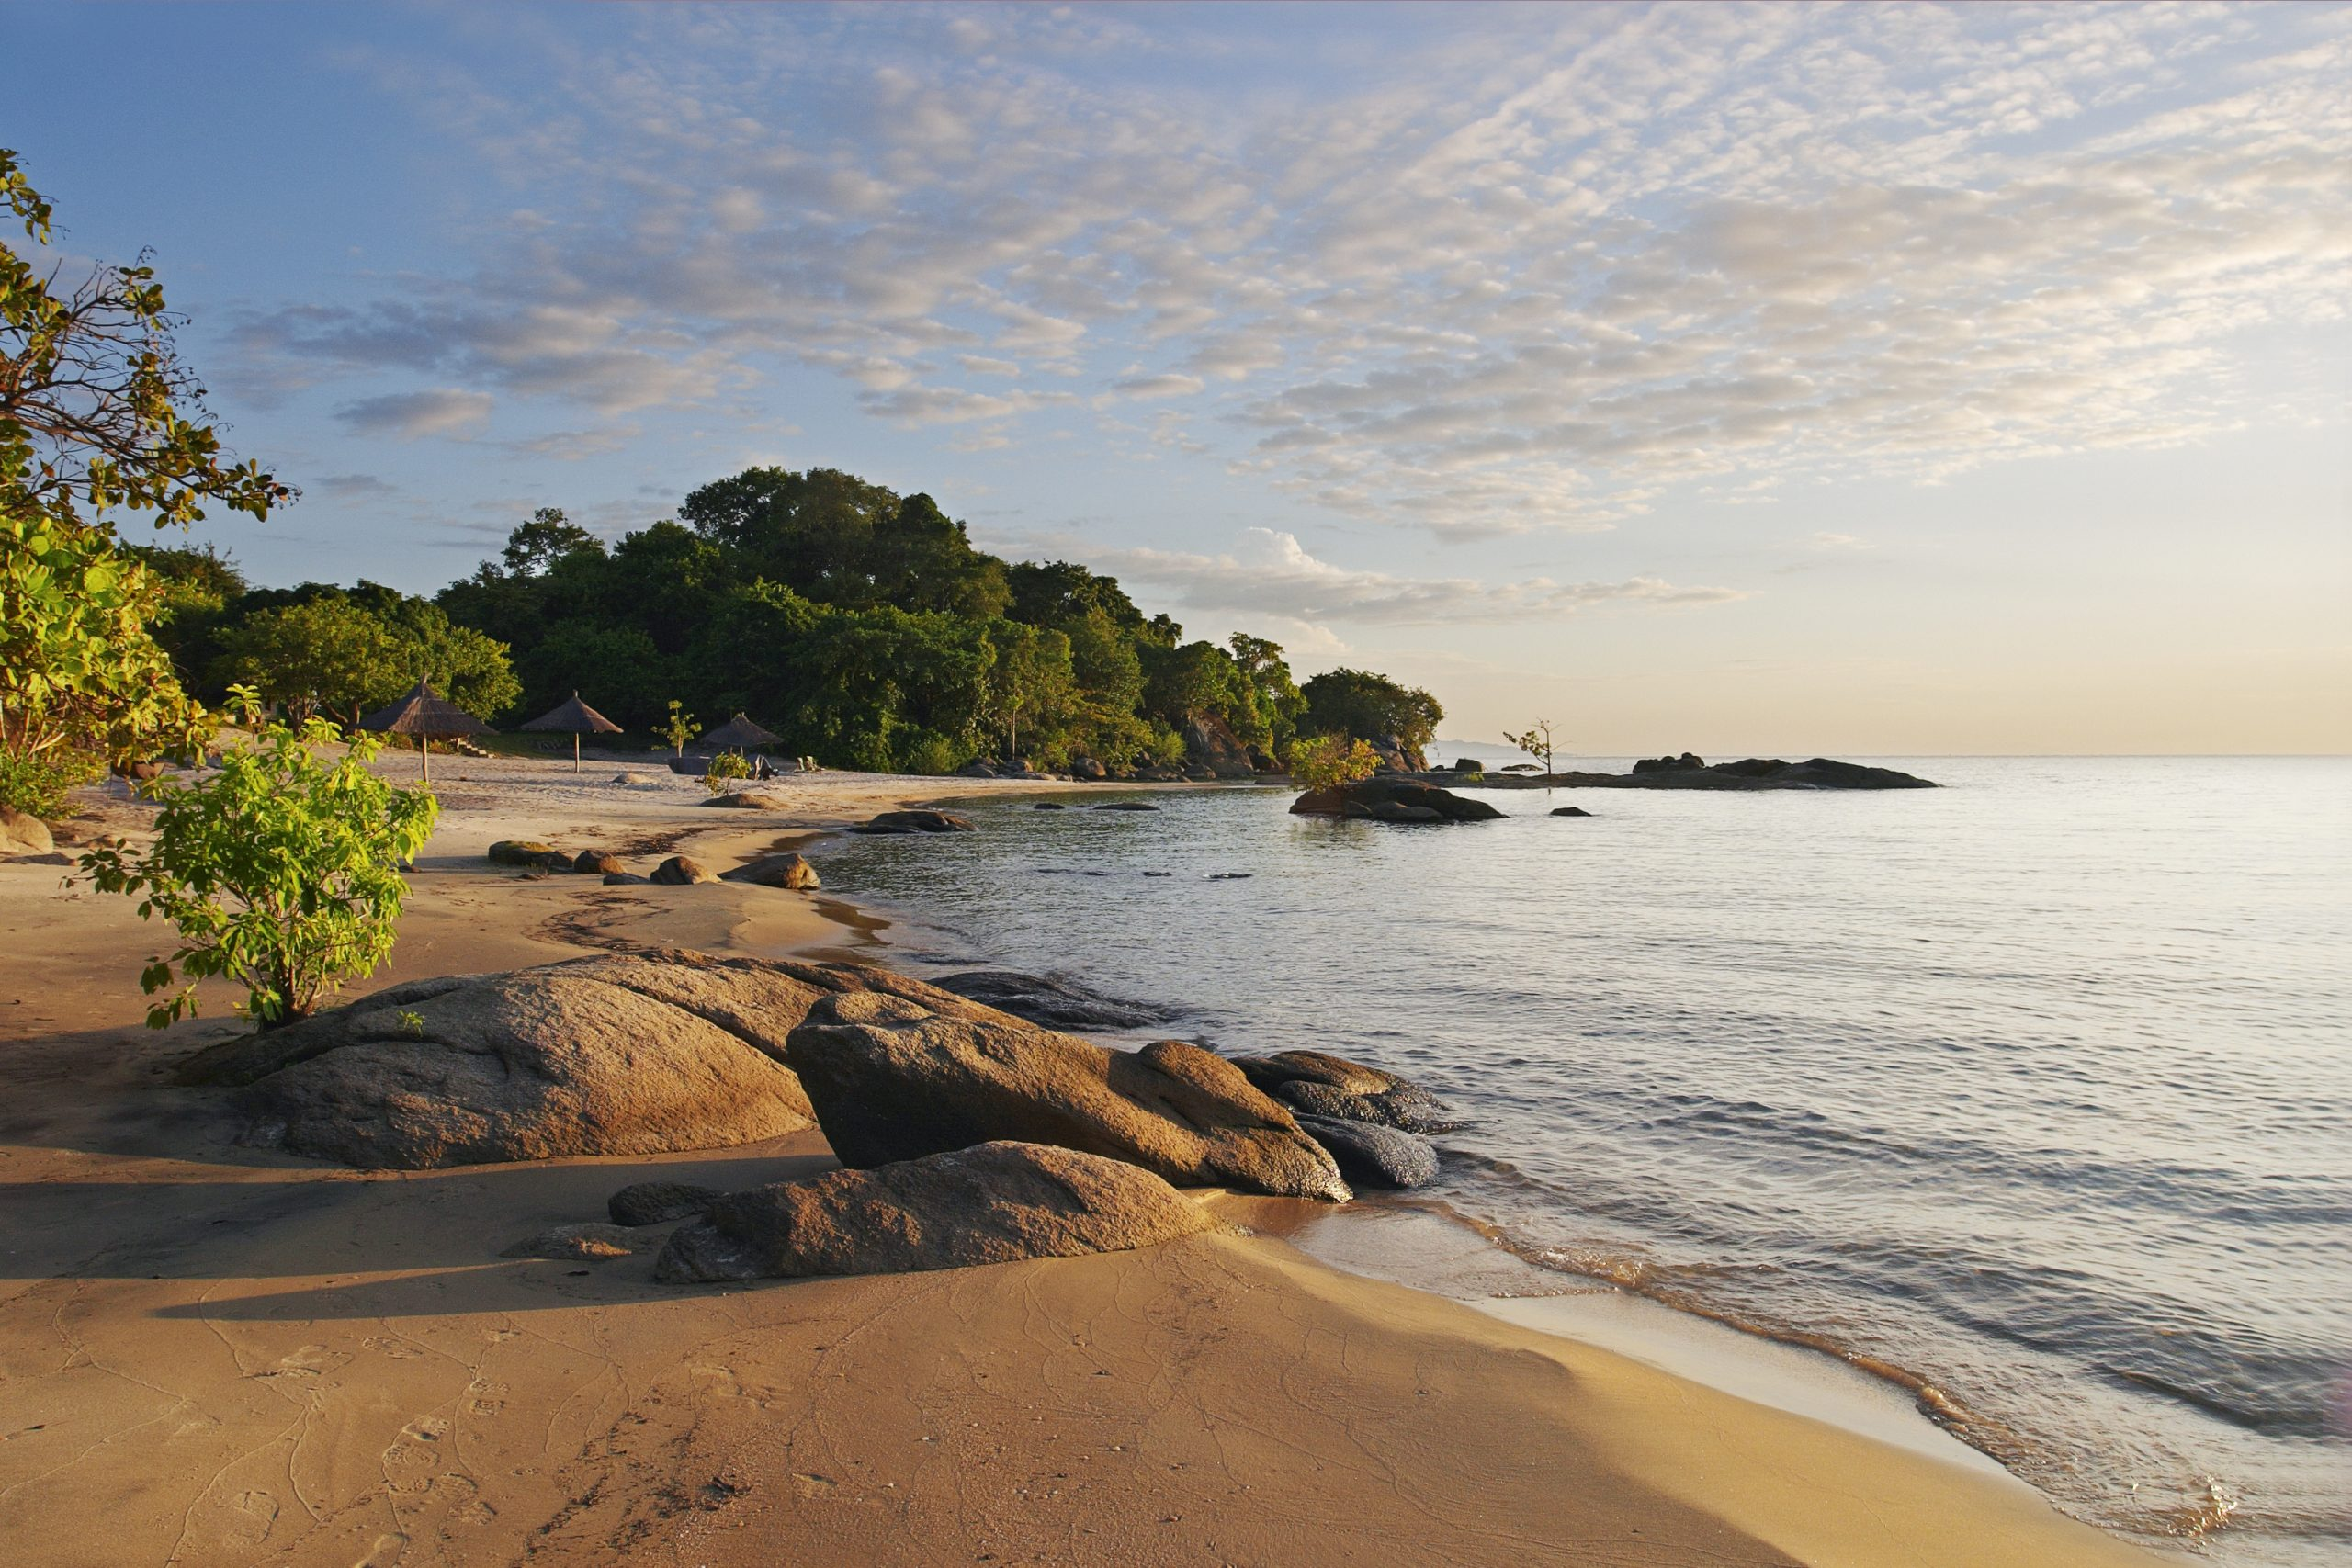 Makuzi Beach, Lake Malawi, just after sunrise. The early morning light is throwing long shadows on the beach.